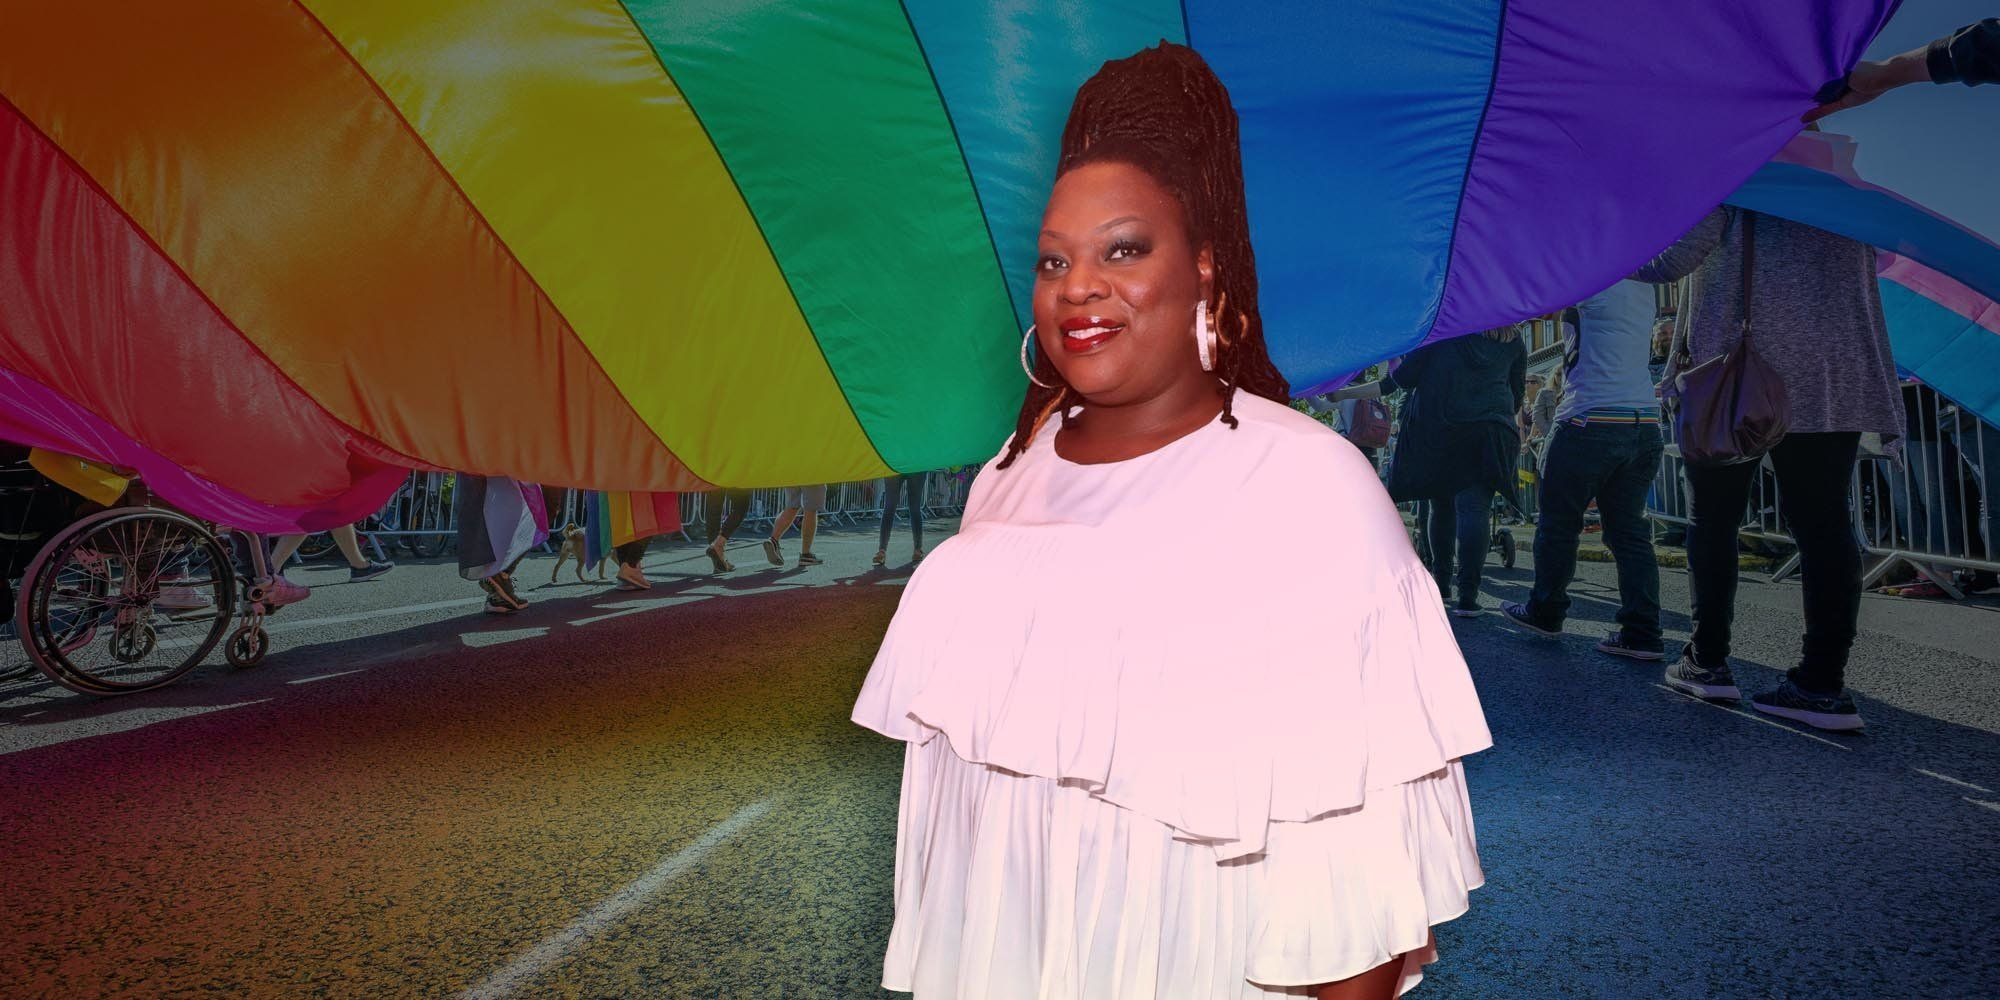 Some Black trans women exemplify pride just by being ourselves. Others put their lives on the line by advocating forour